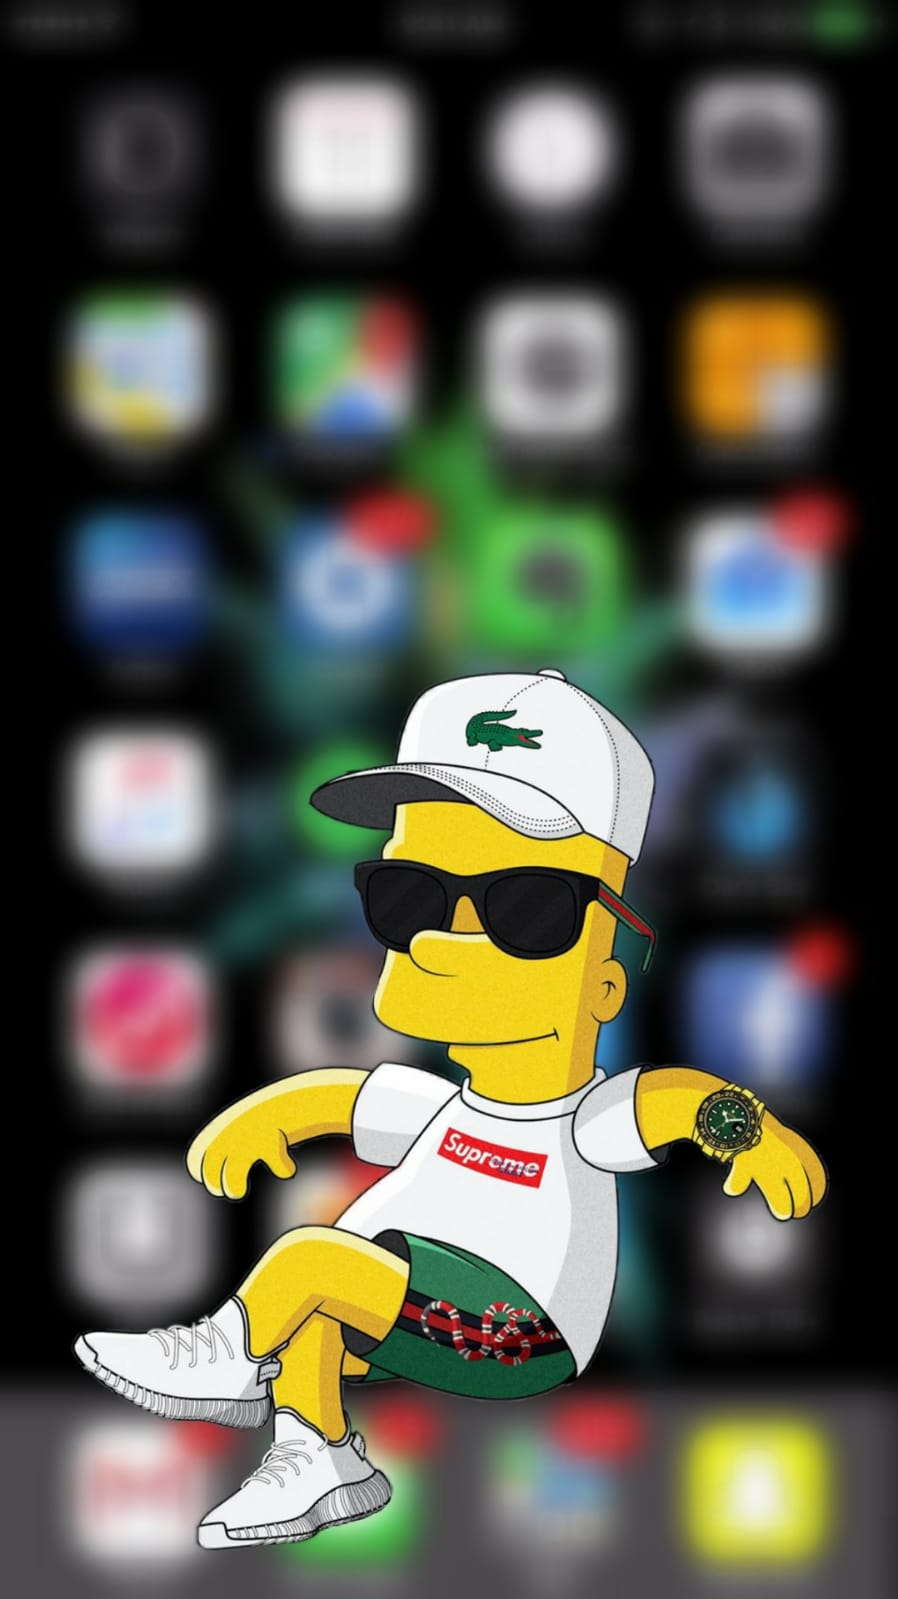 #simpson #wallpapersimpson #bart #bartsimpson